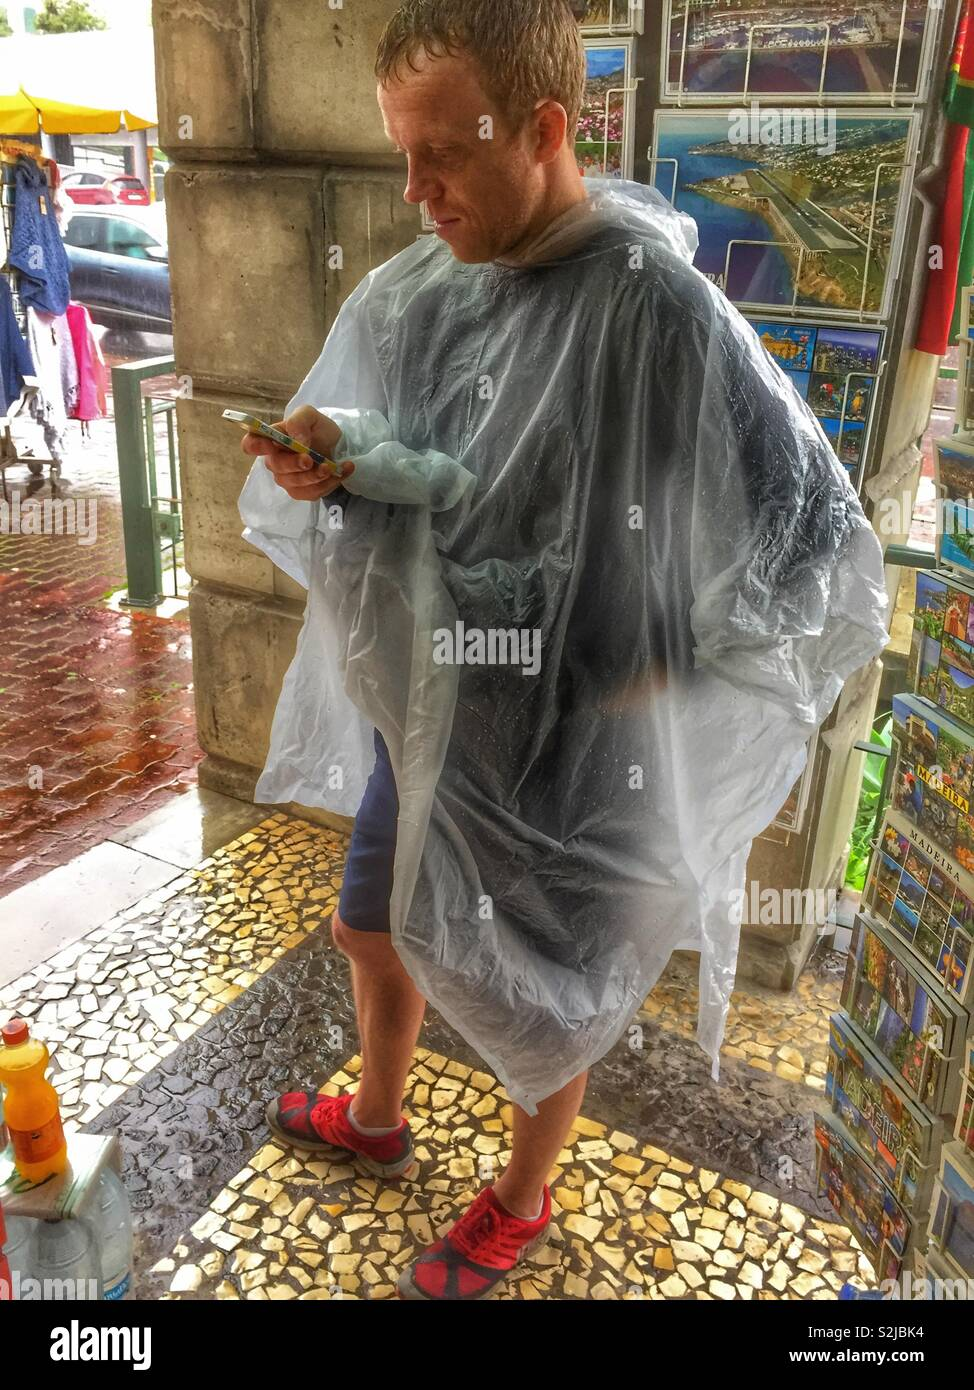 Man using a mobile phone wearing a poncho. - Stock Image